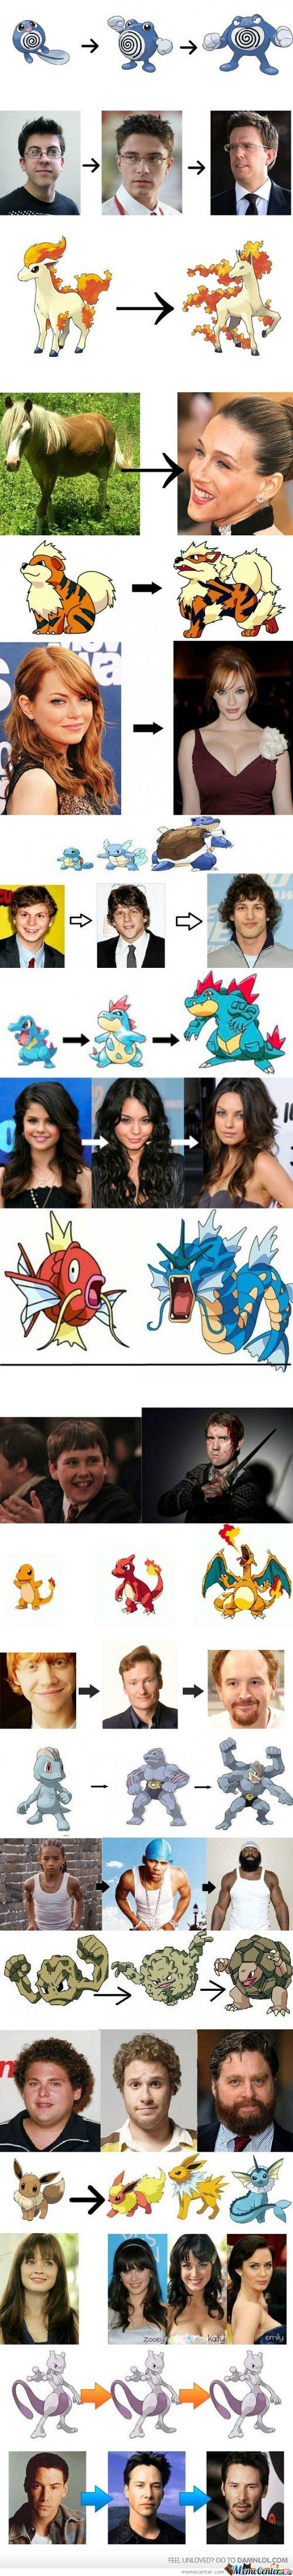 If Celebrities Evolved